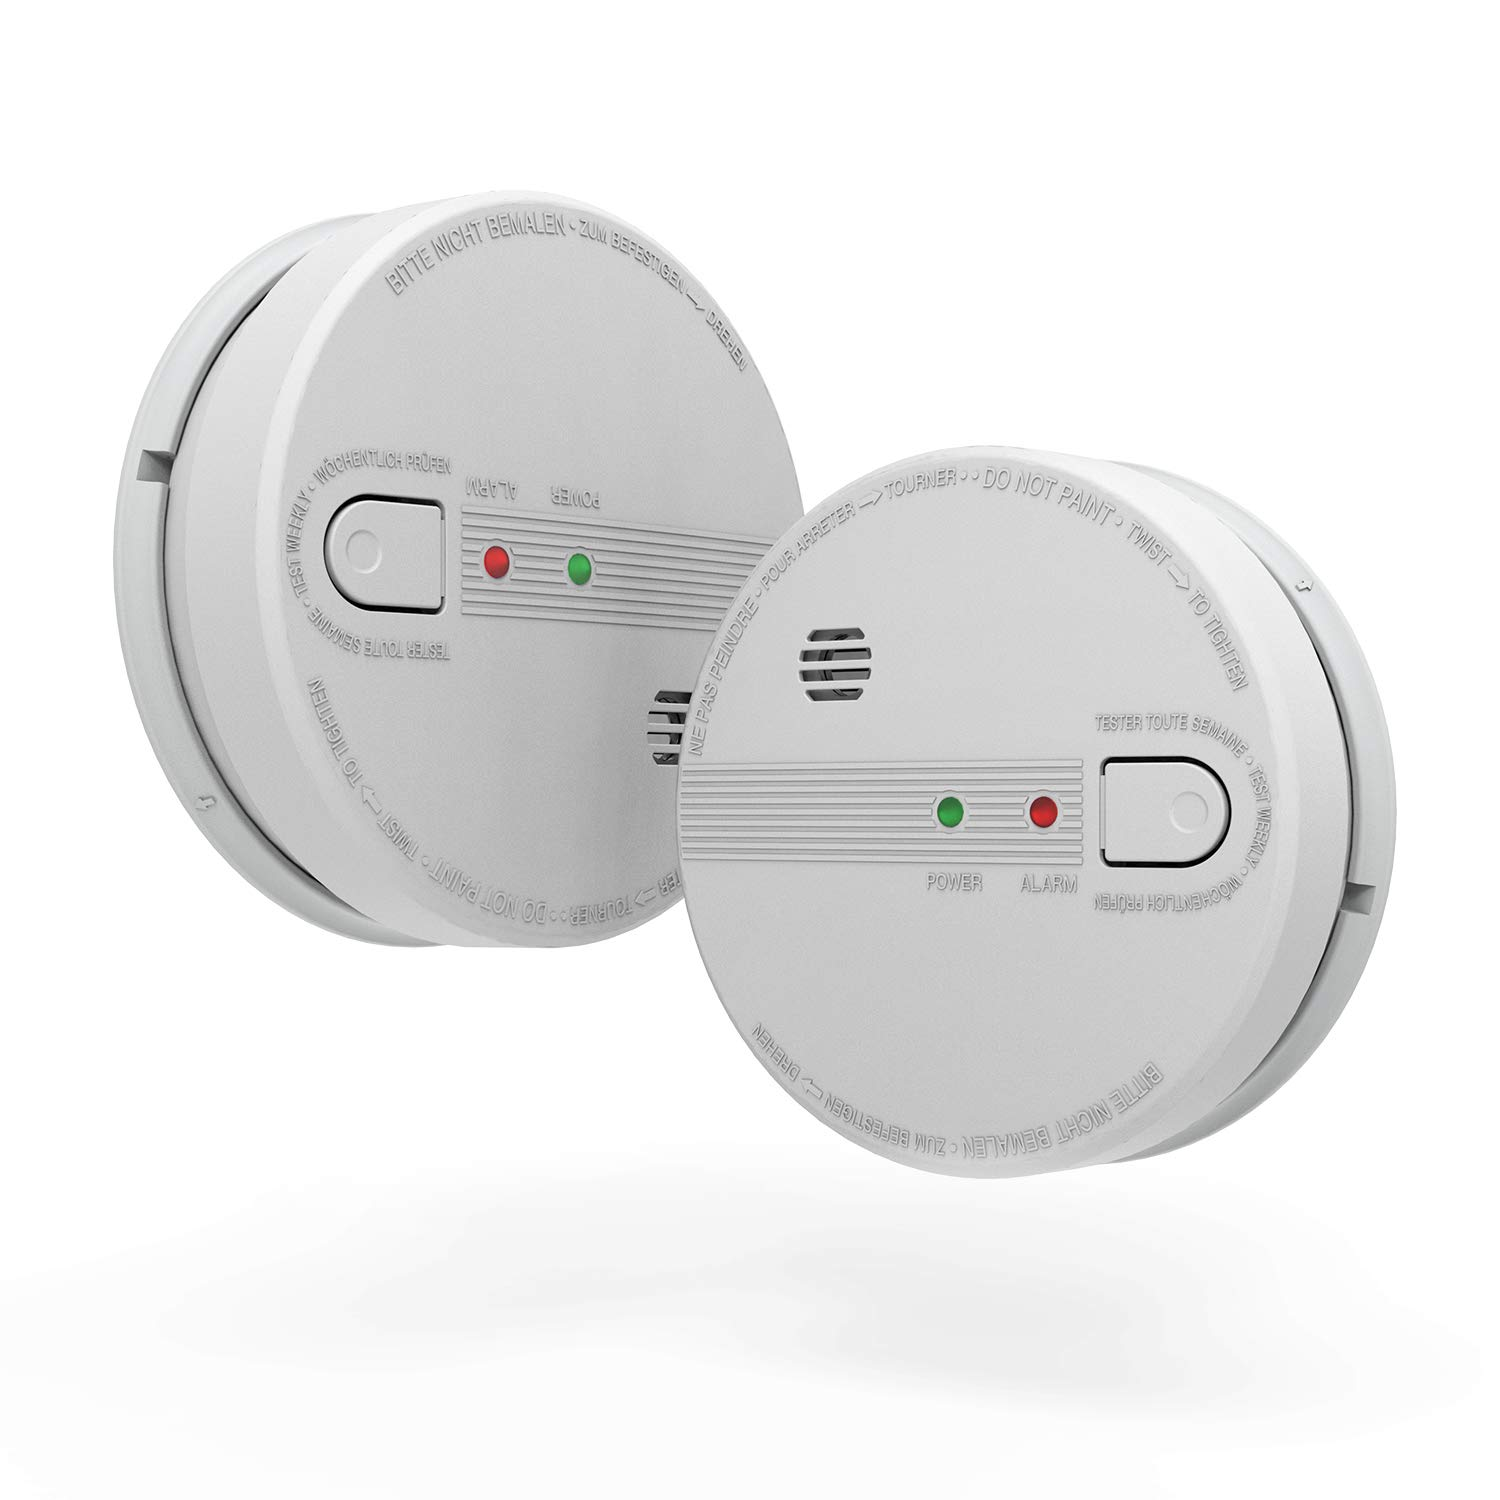 2 Pack Smoke Detector, AC Hardwired Interconnect Smoke Alarm, Photoelectric Sensor Fire Alarm with 9V Battery Backup